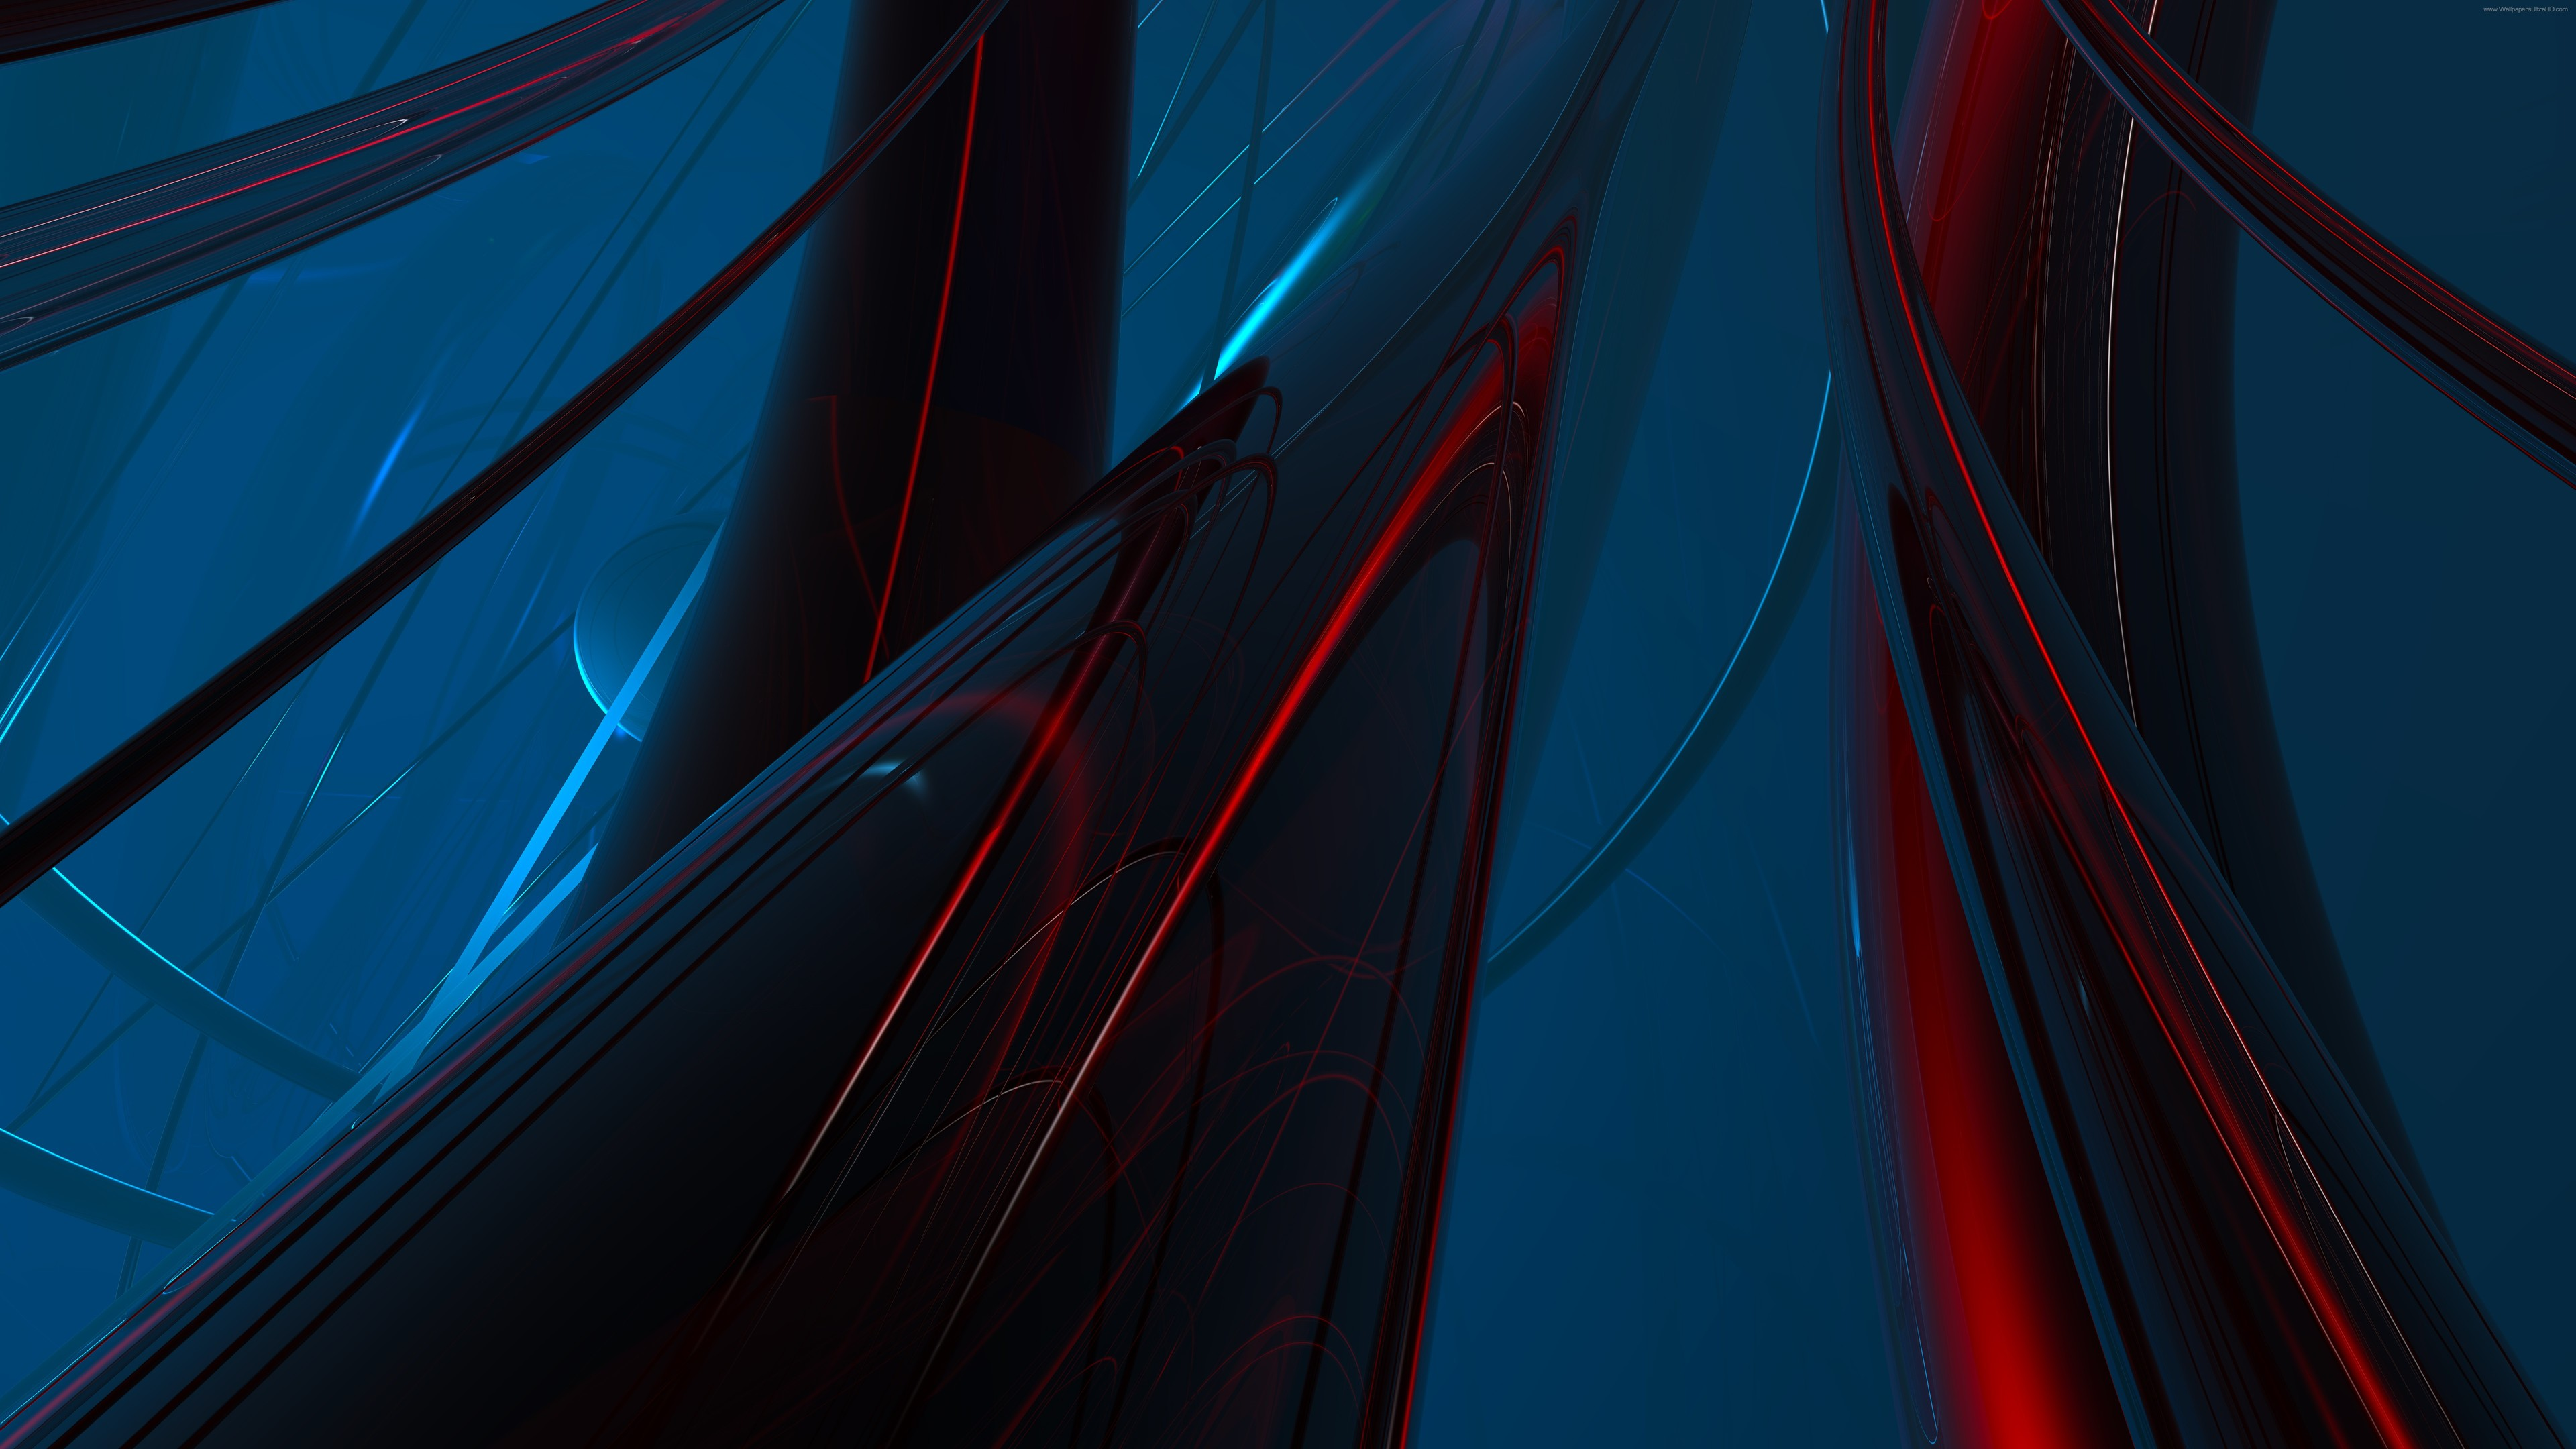 abstract motion geometry 8k 1539371626 - Abstract Motion Geometry 8k - hd-wallpapers, geometry wallpapers, abstract wallpapers, 4k-wallpapers